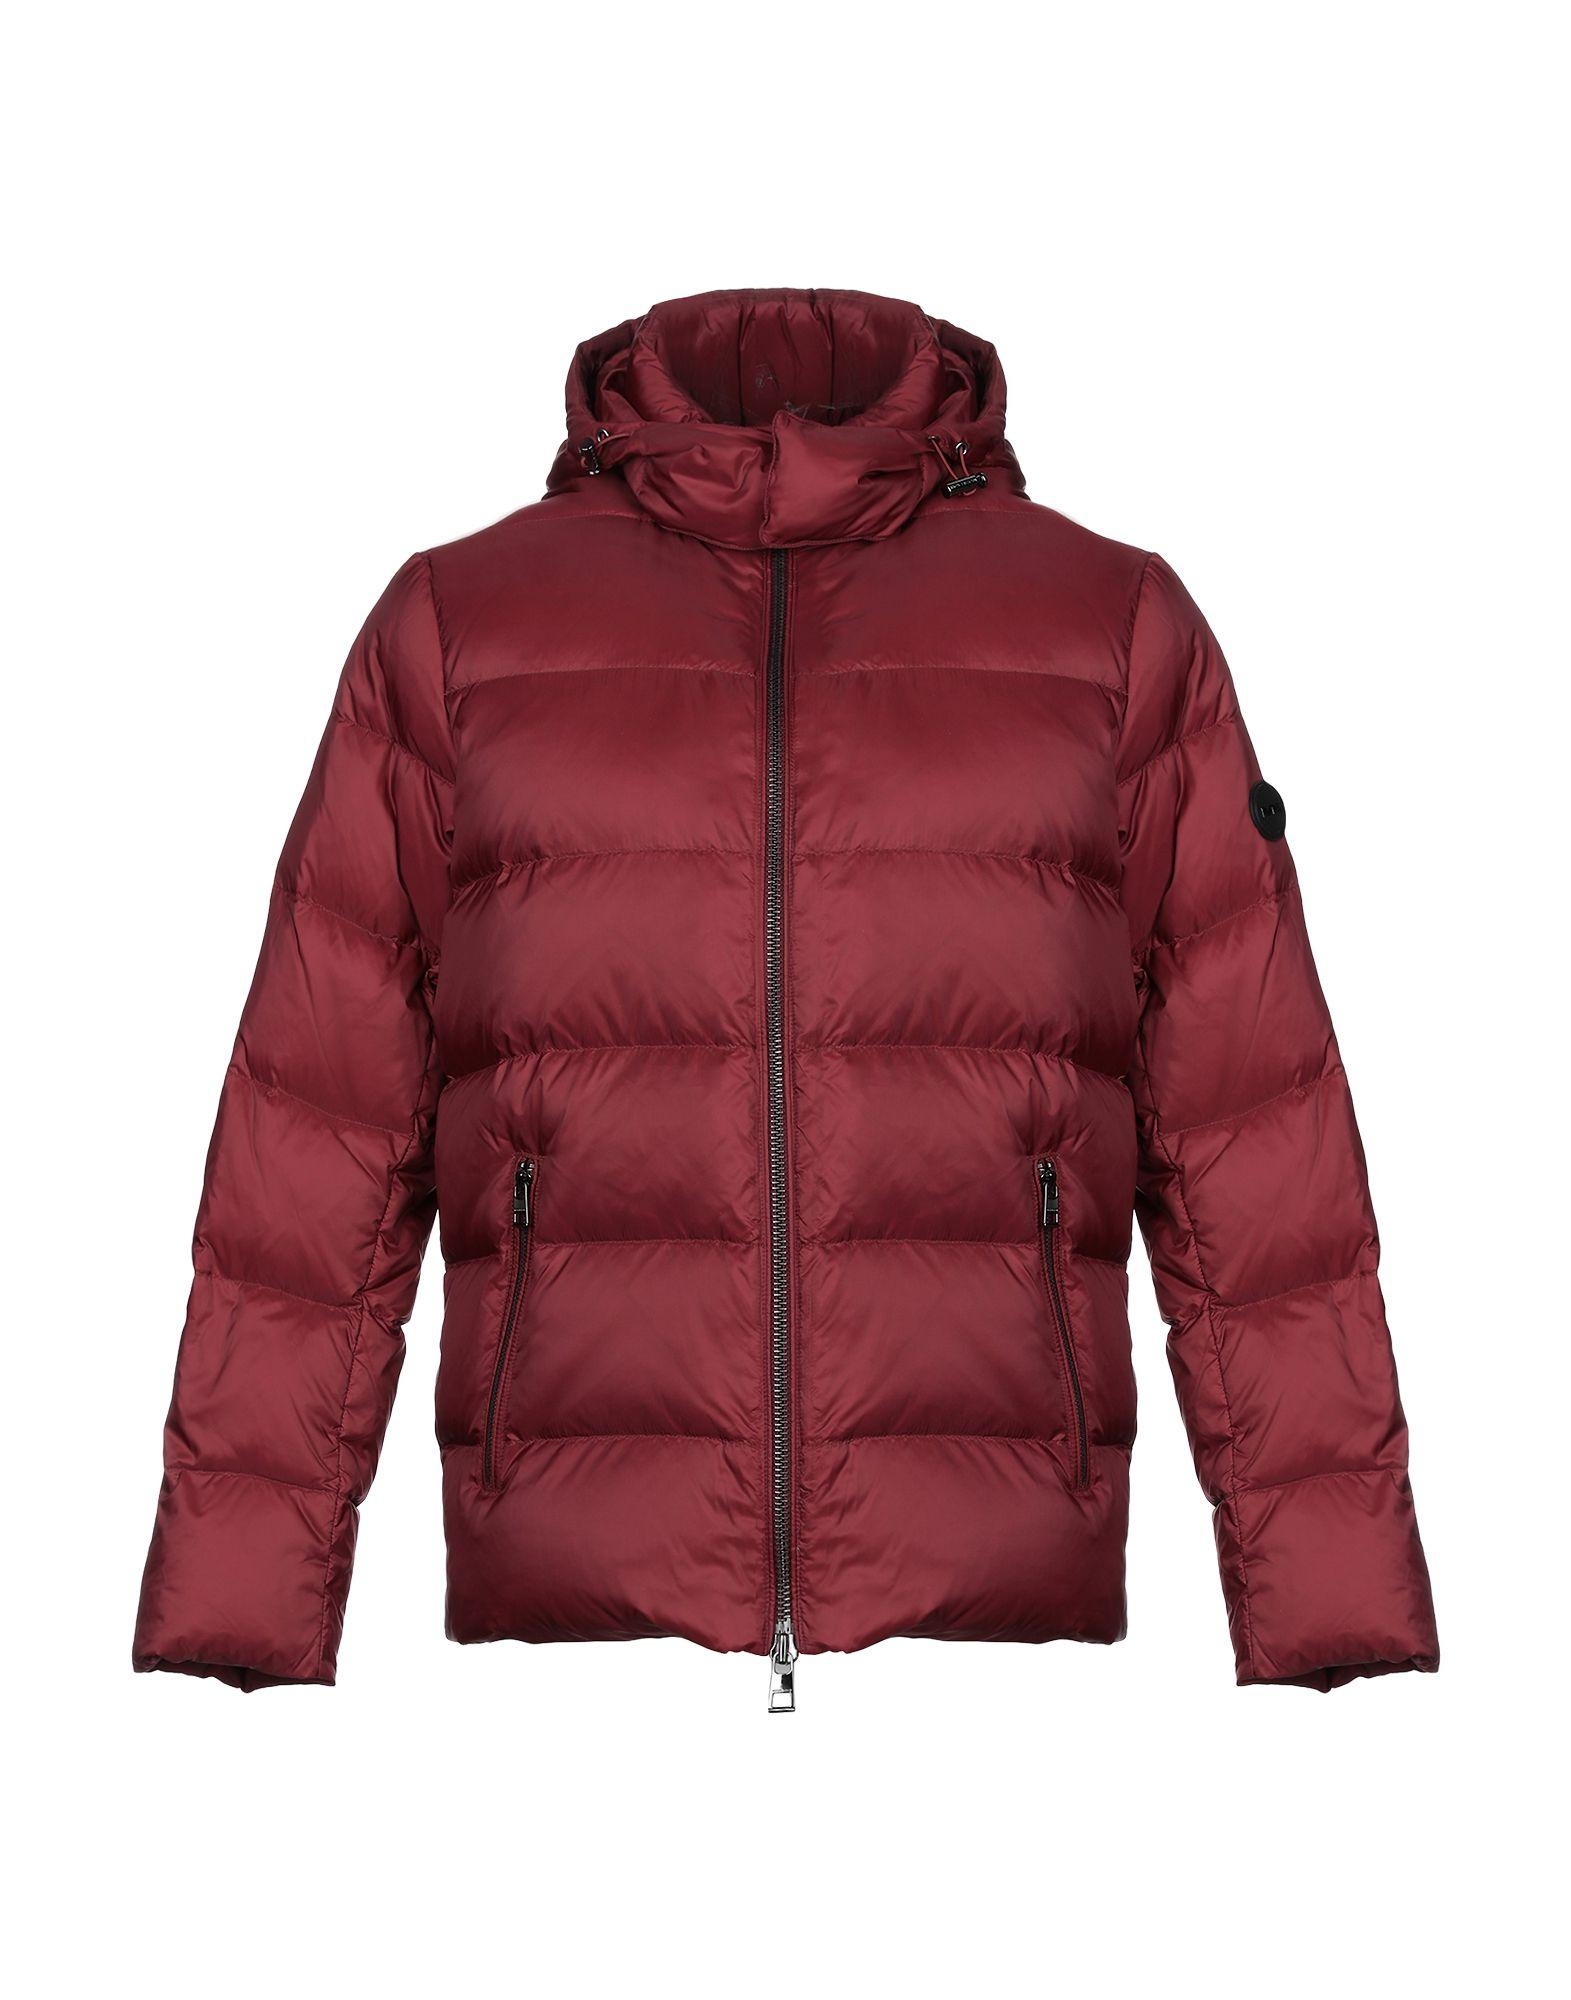 b9a3131752f8 Michael Kors Synthetic Down Jacket in Red for Men - Lyst